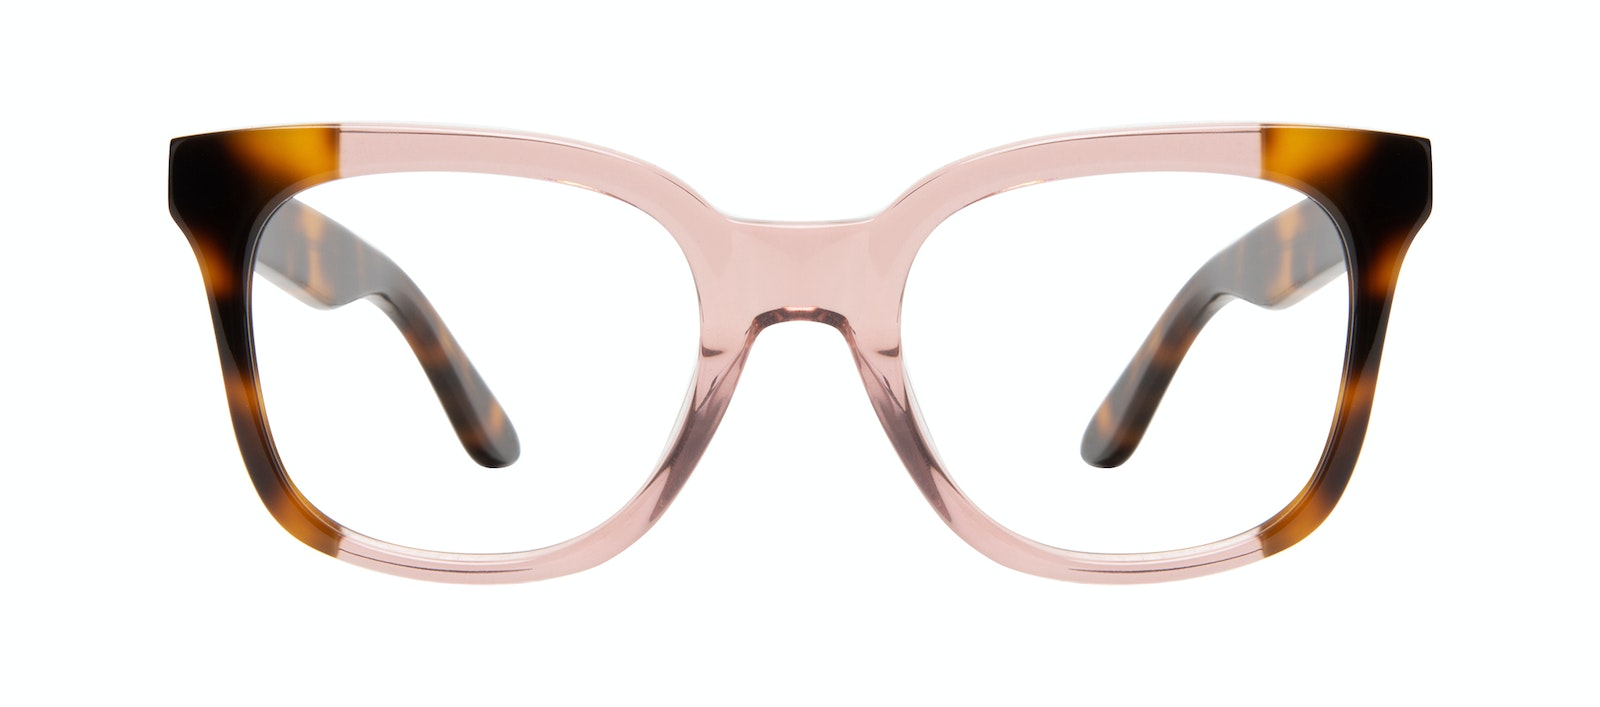 Affordable Fashion Glasses Square Eyeglasses Women Mighty Rose Tort Front